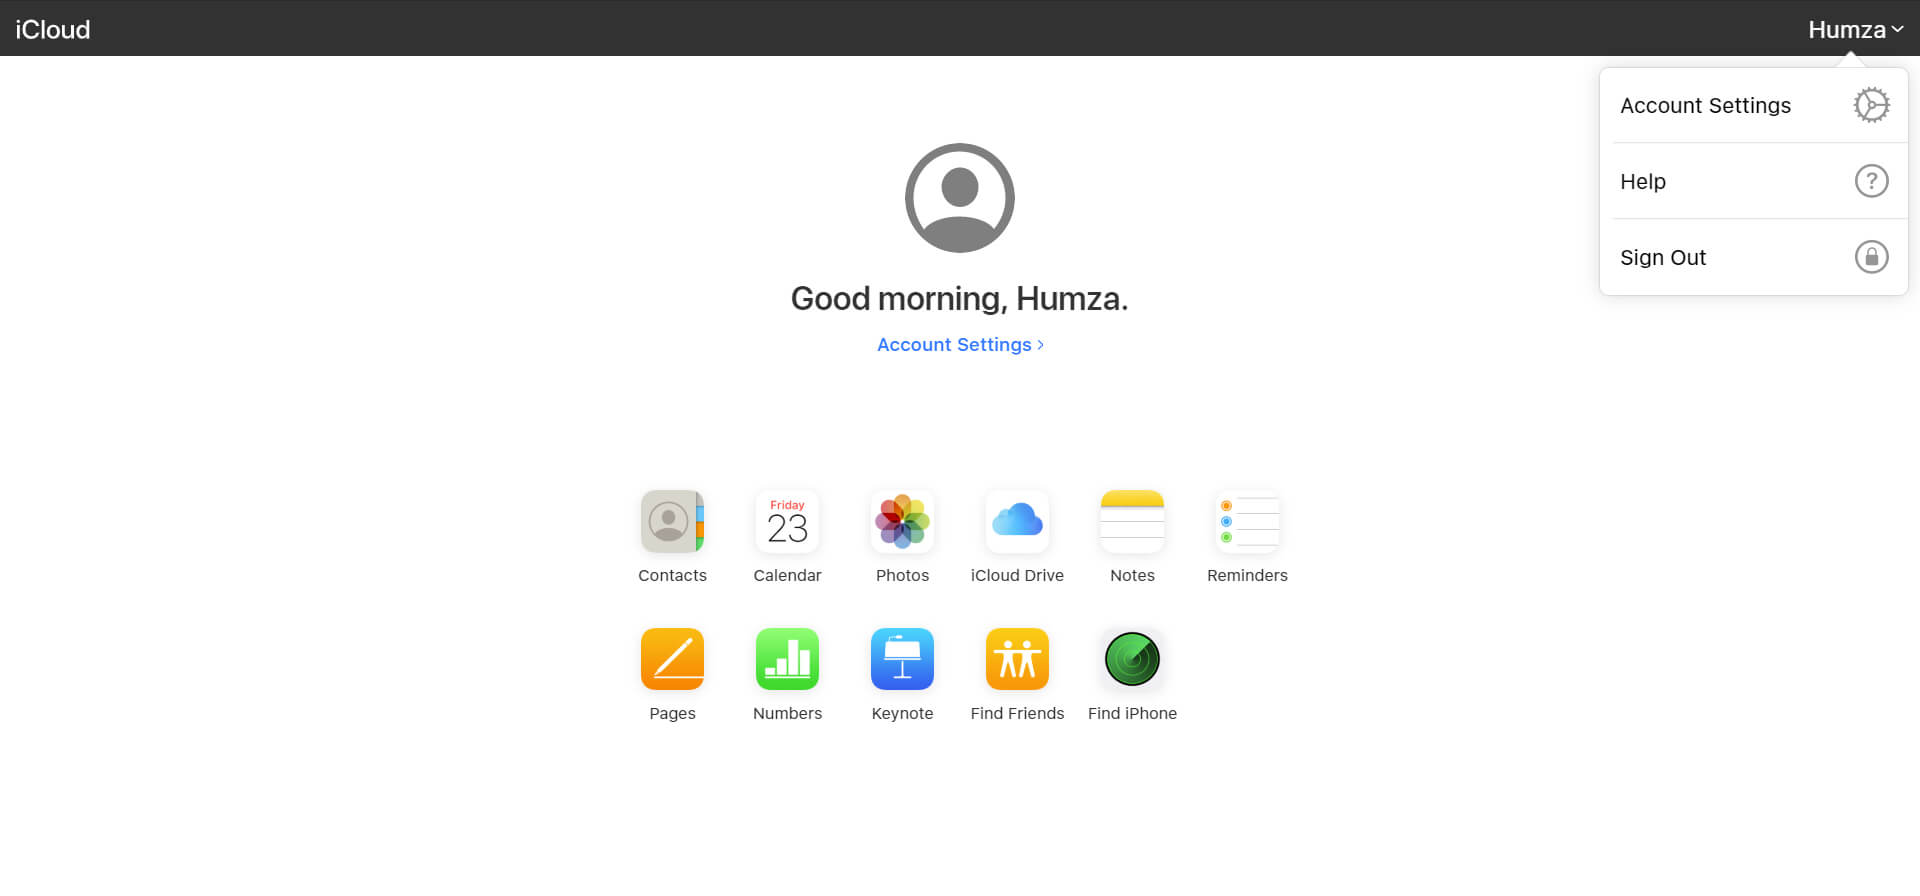 Apple betas a new interface for iCloud web